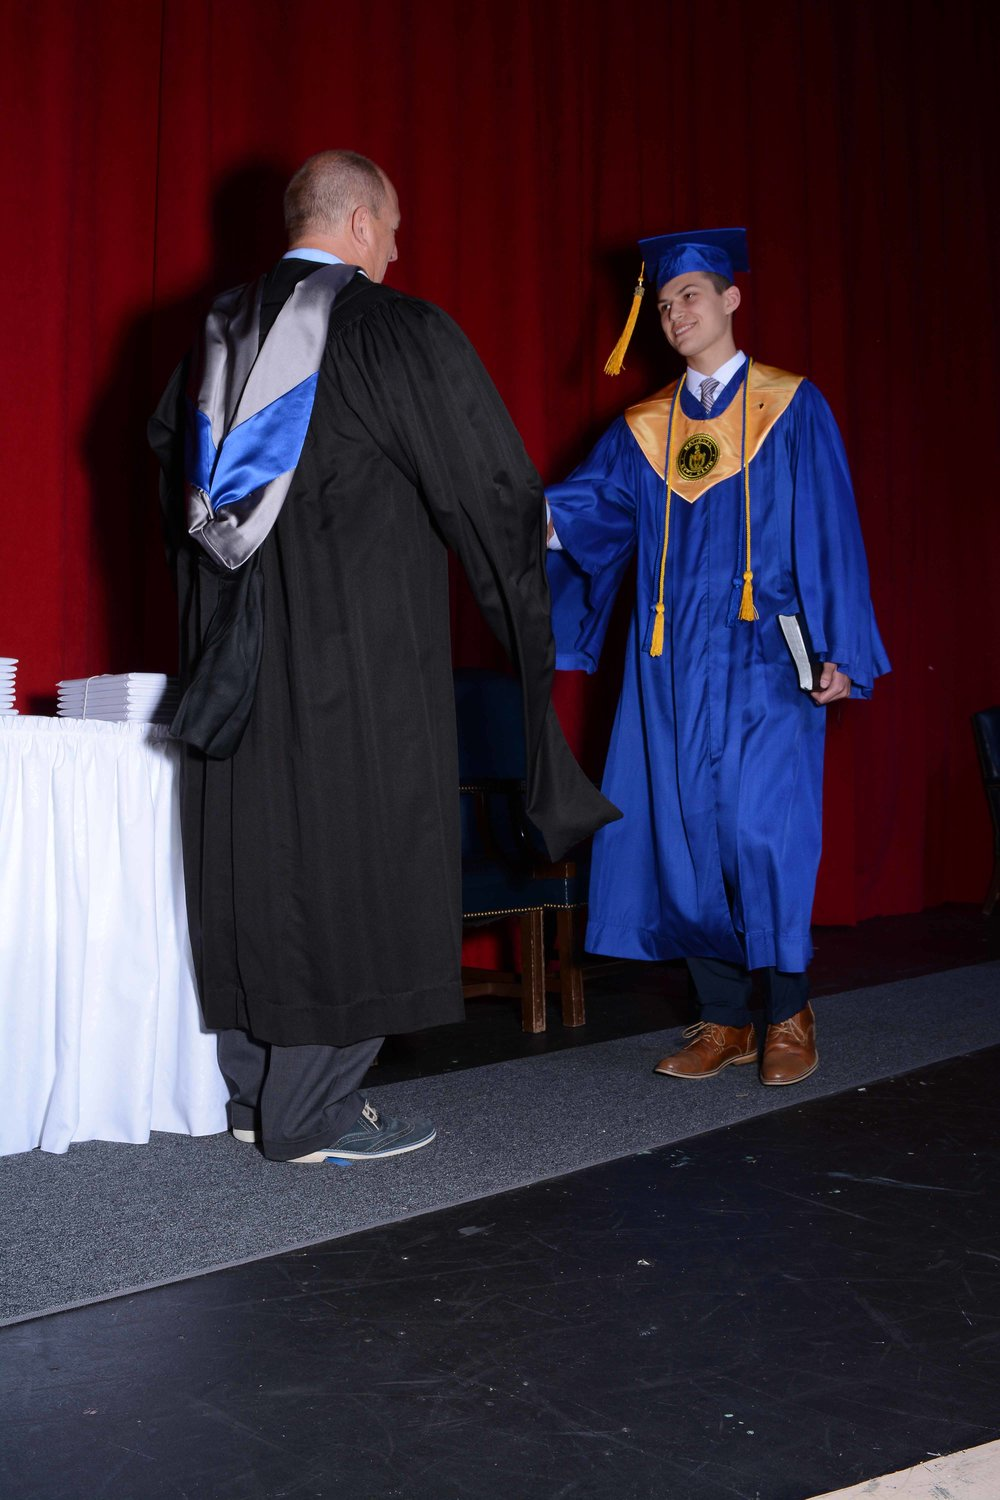 May14 Commencement142.jpg